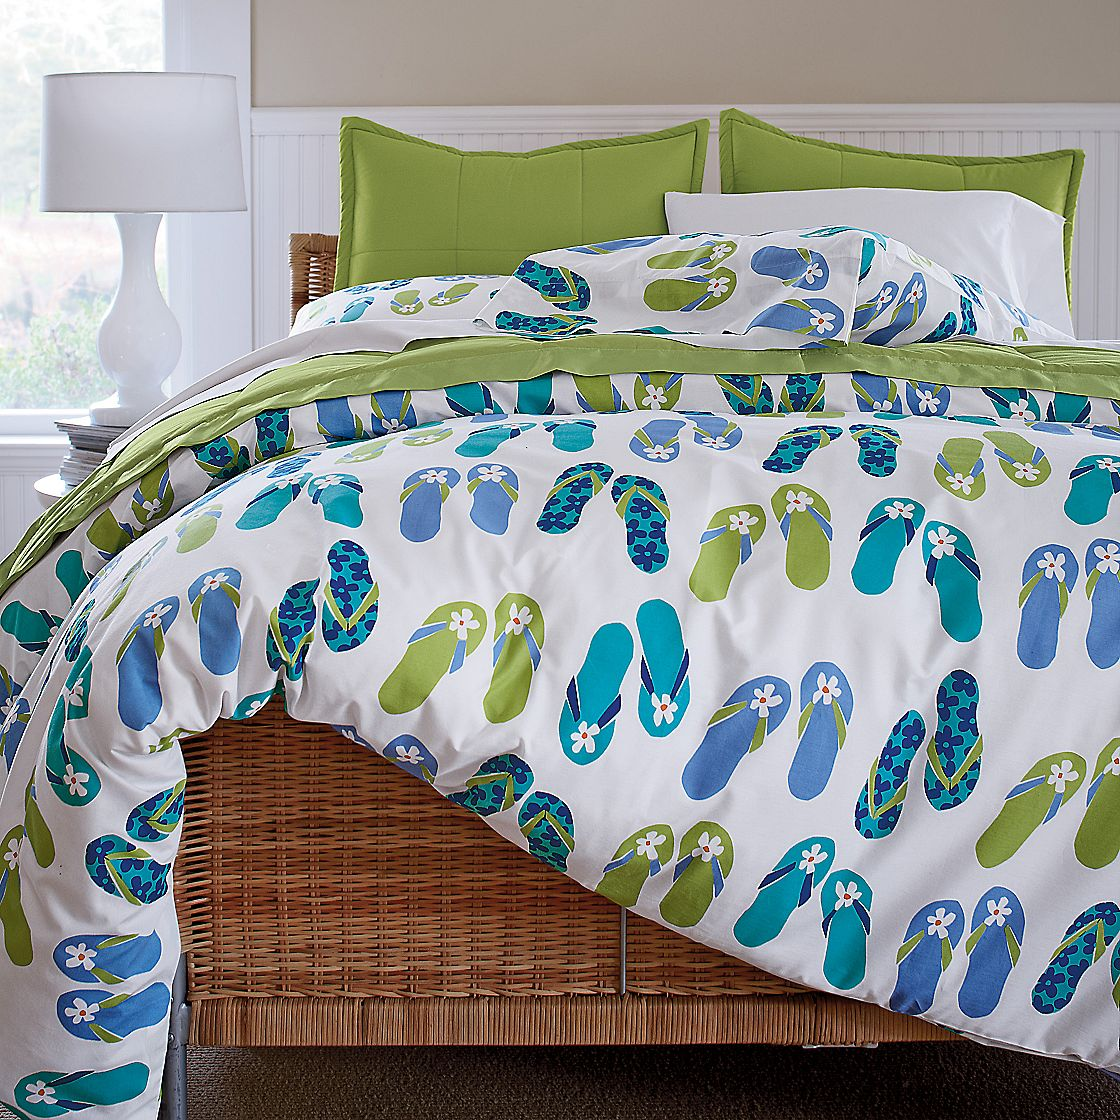 Seaside Style: Beach House Bedding